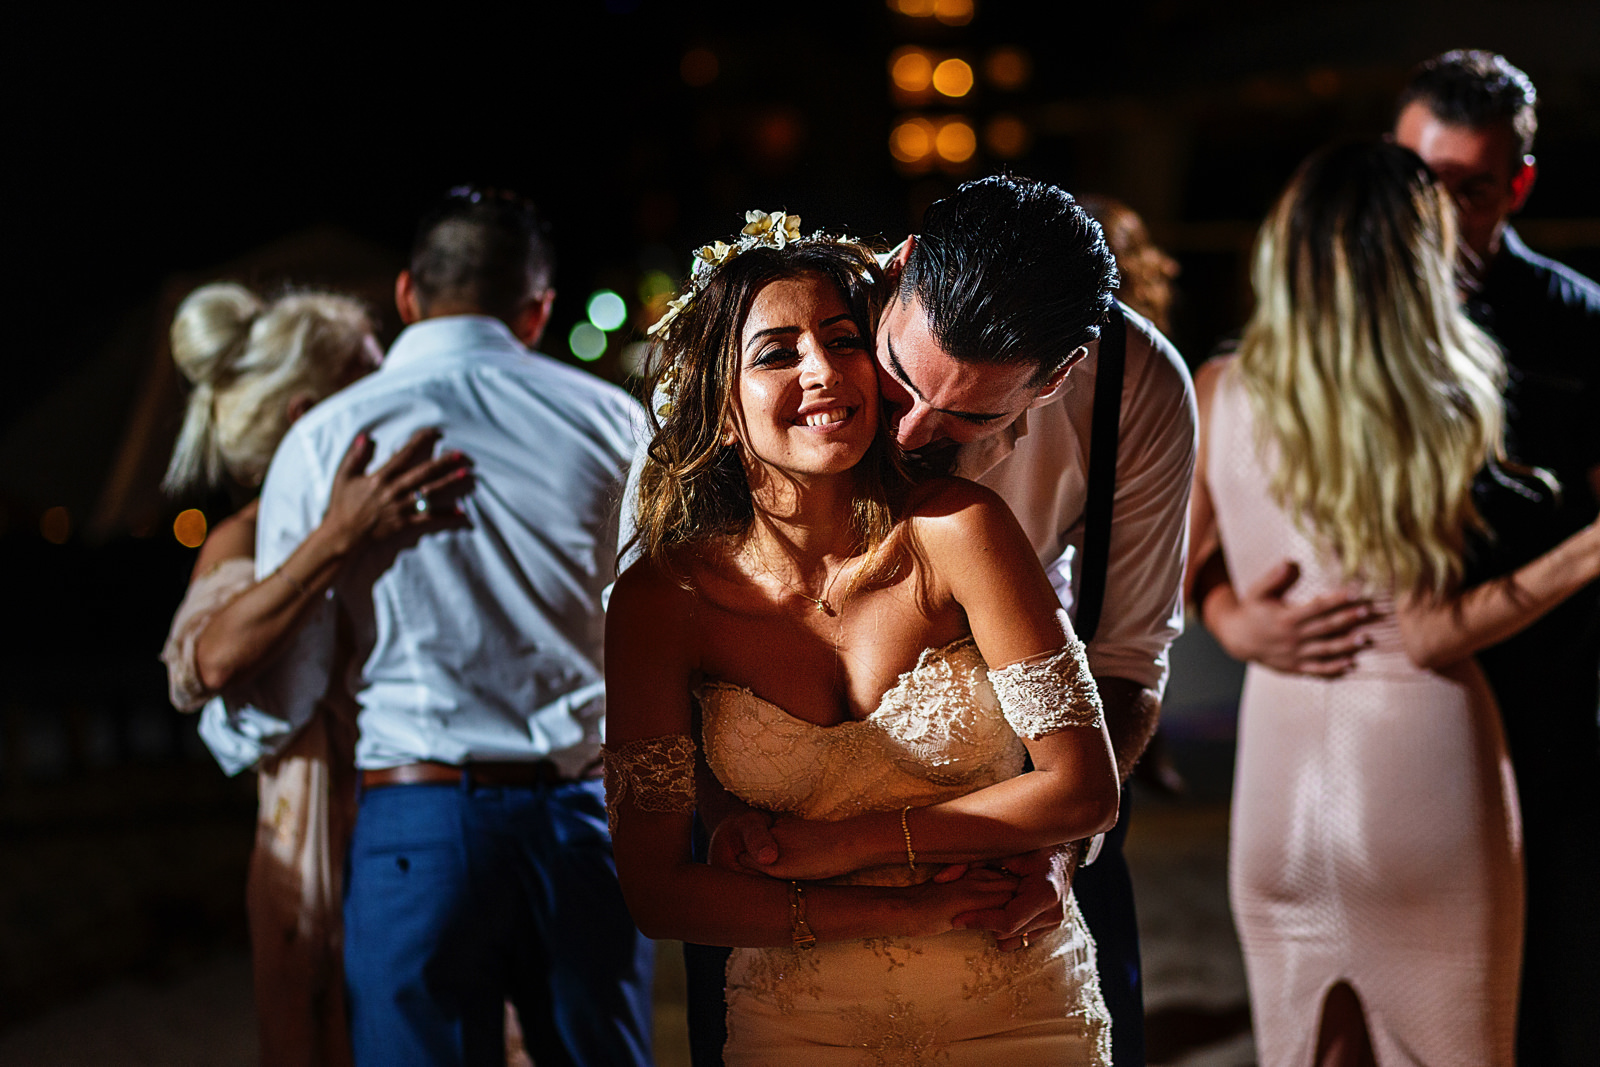 Groom hugs bride from behind in the middle of the dance floor